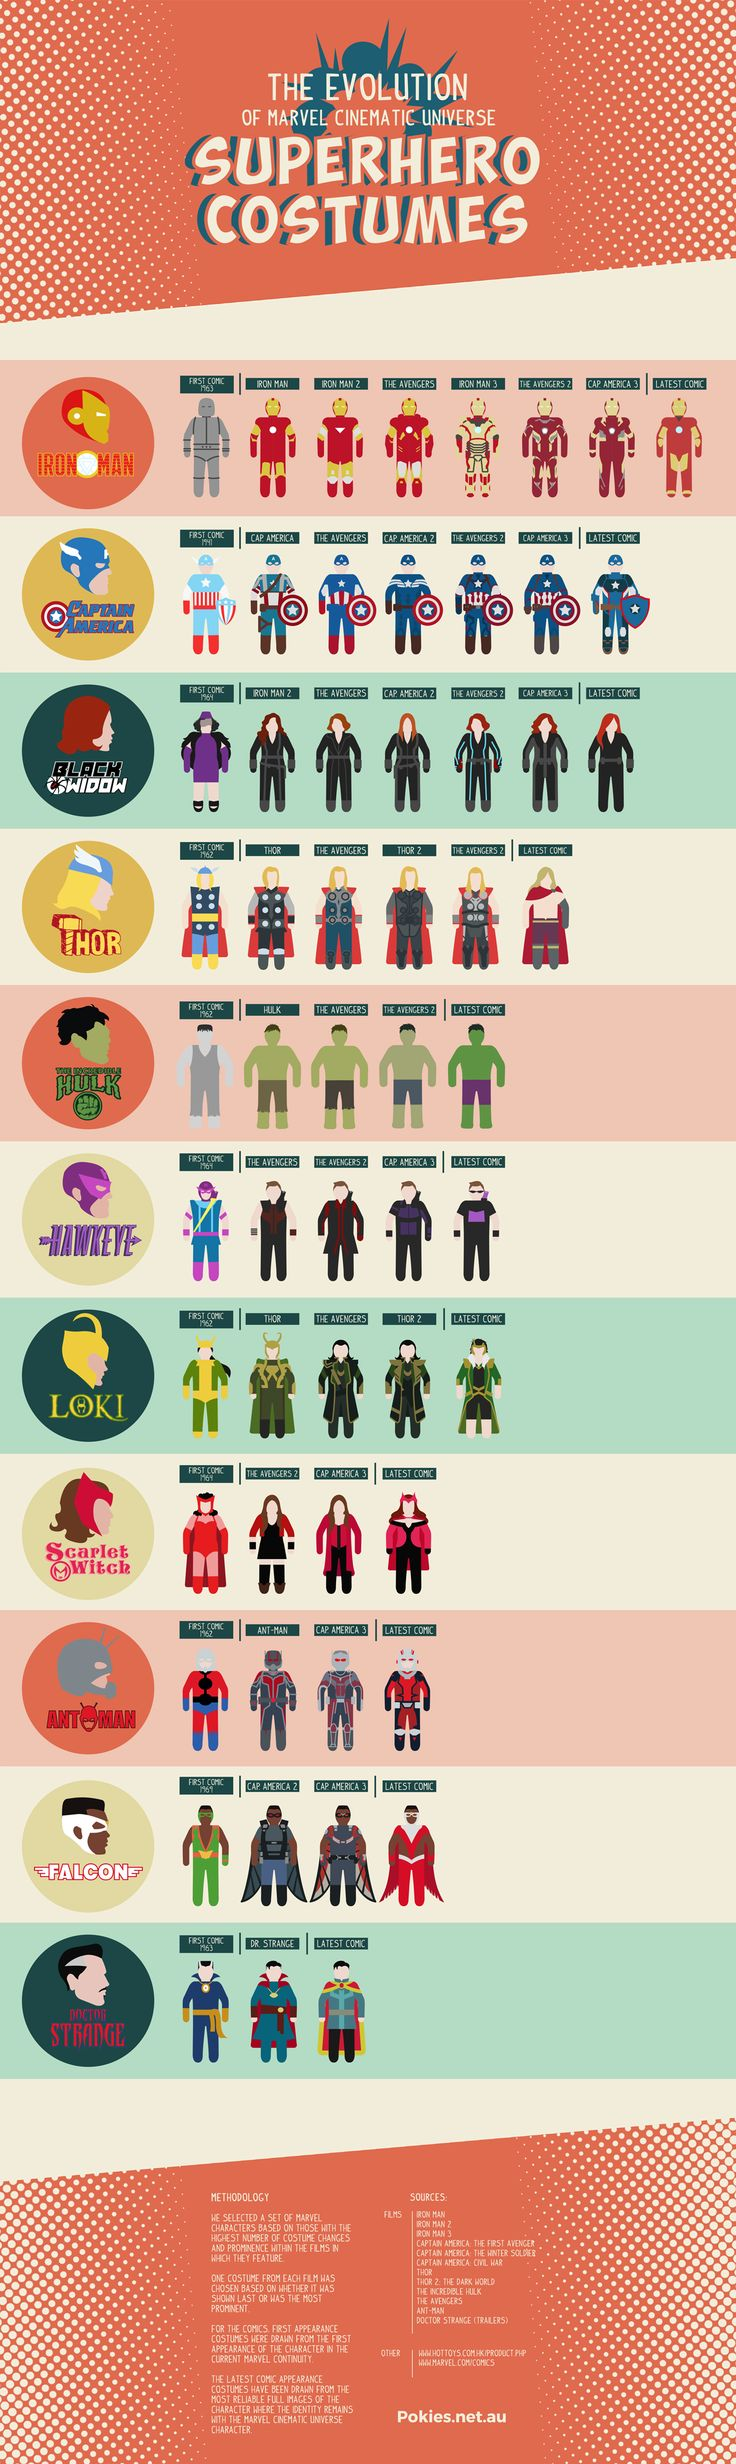 Infographic Shows Marvel Superhero Costume Changes